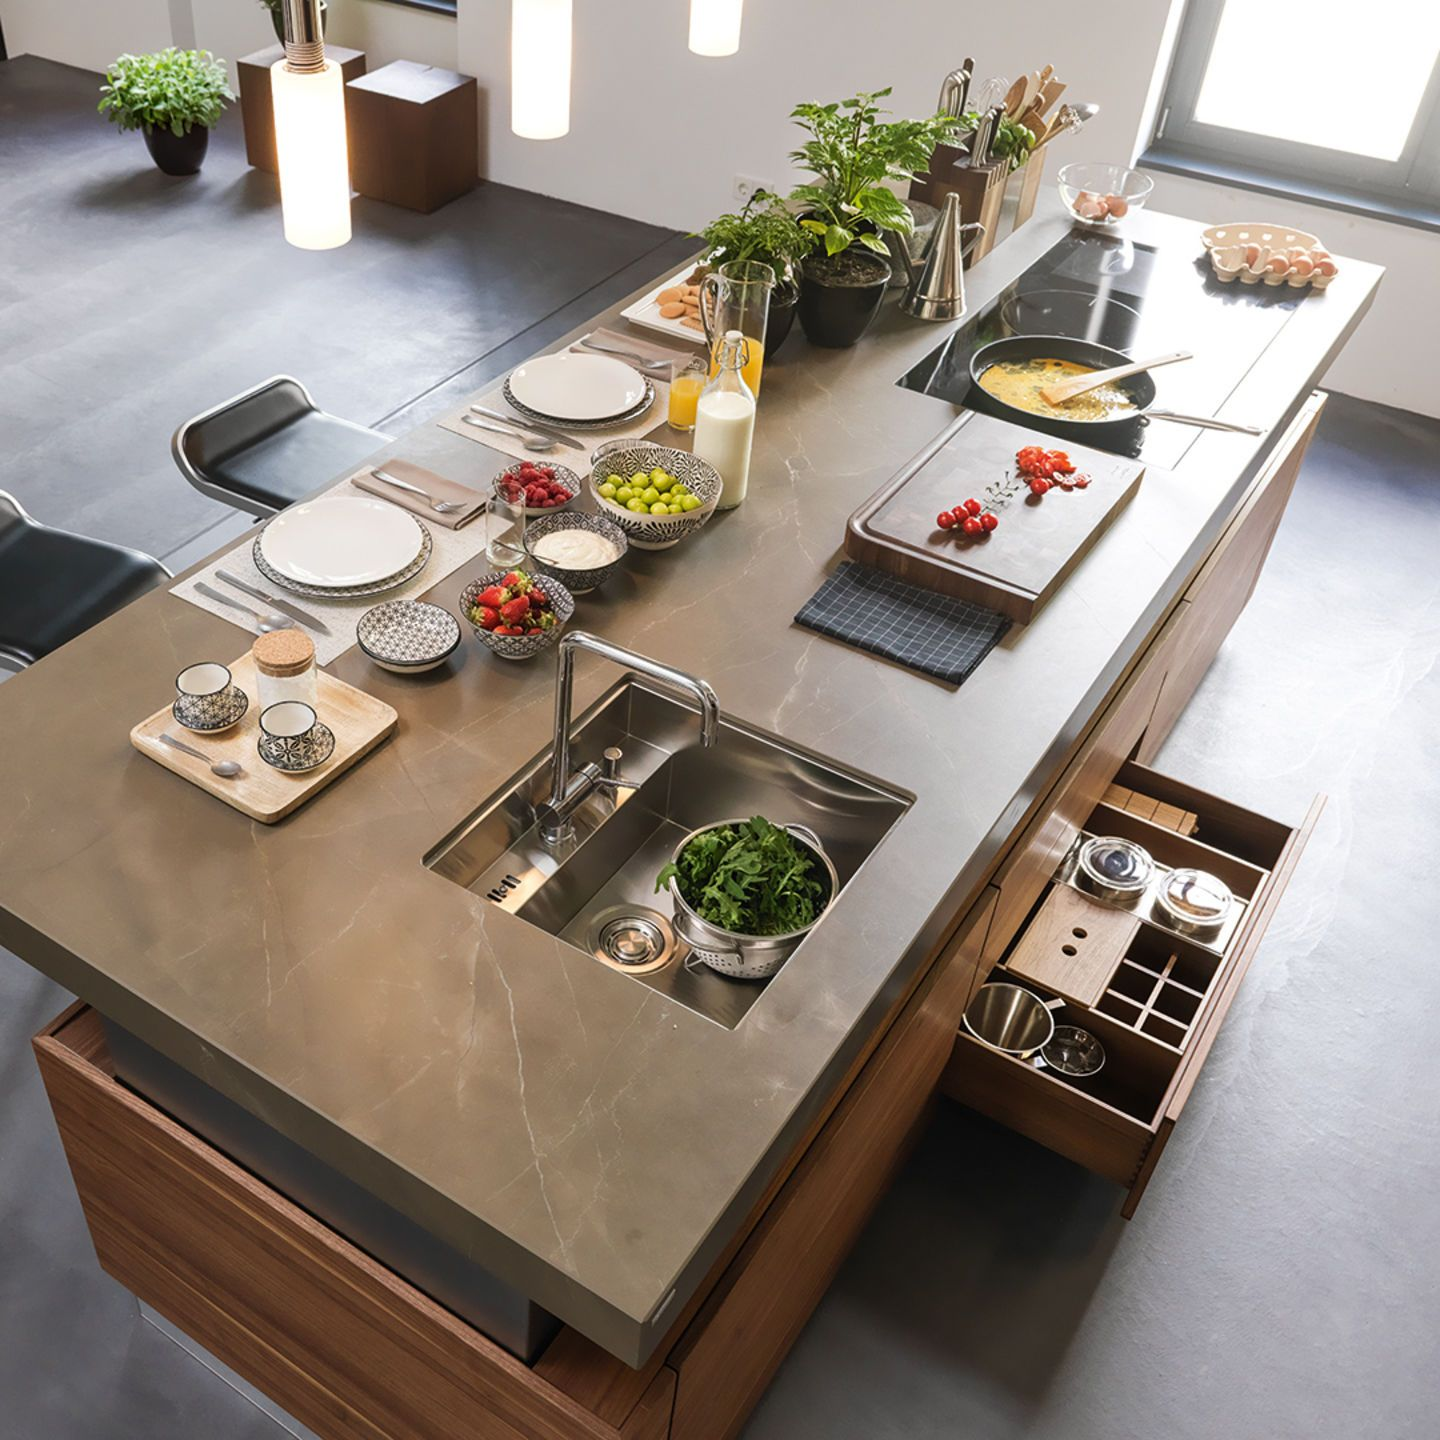 k7 - the height-adjustable kitchen island from TEAM 7 | Home ...